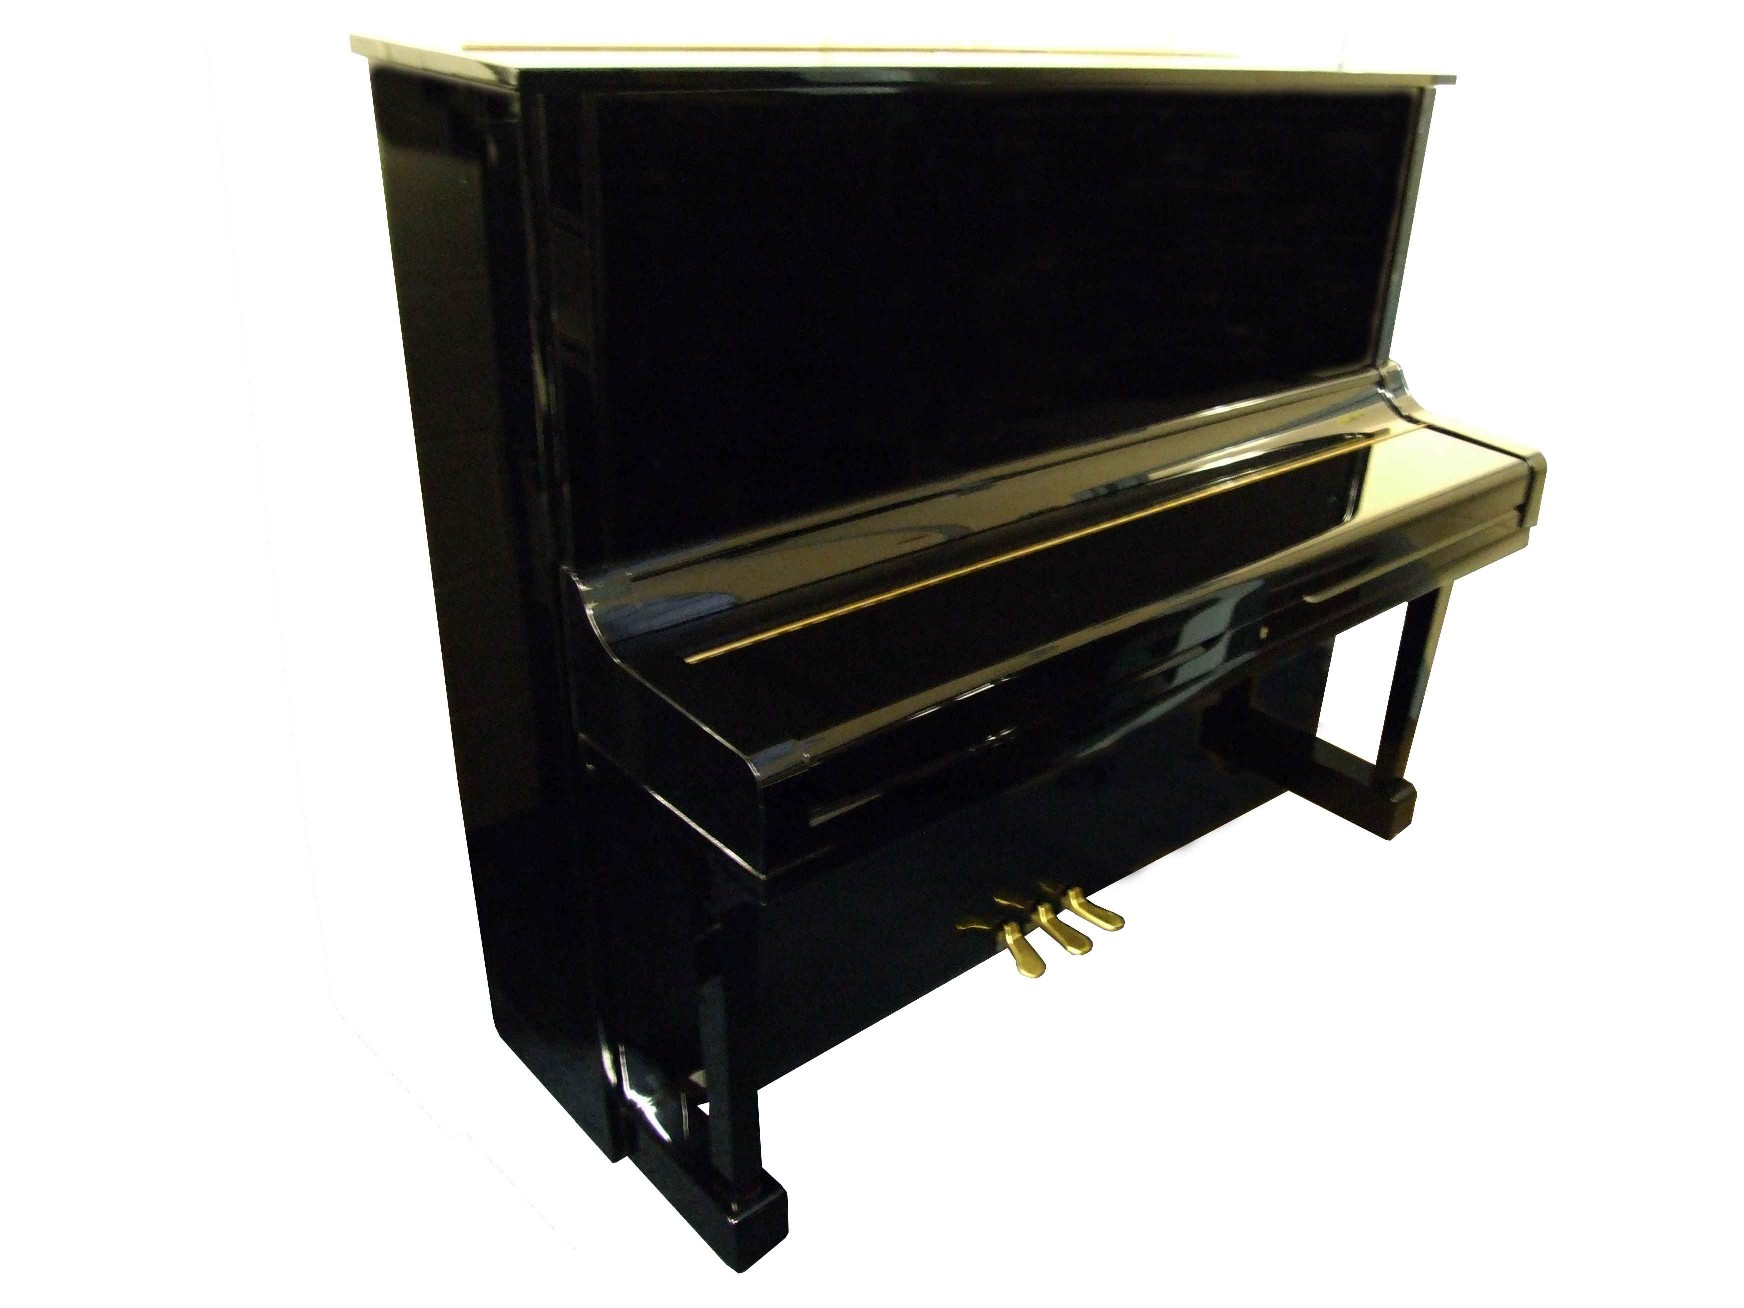 Yamaha U3 105 Pianos for sale